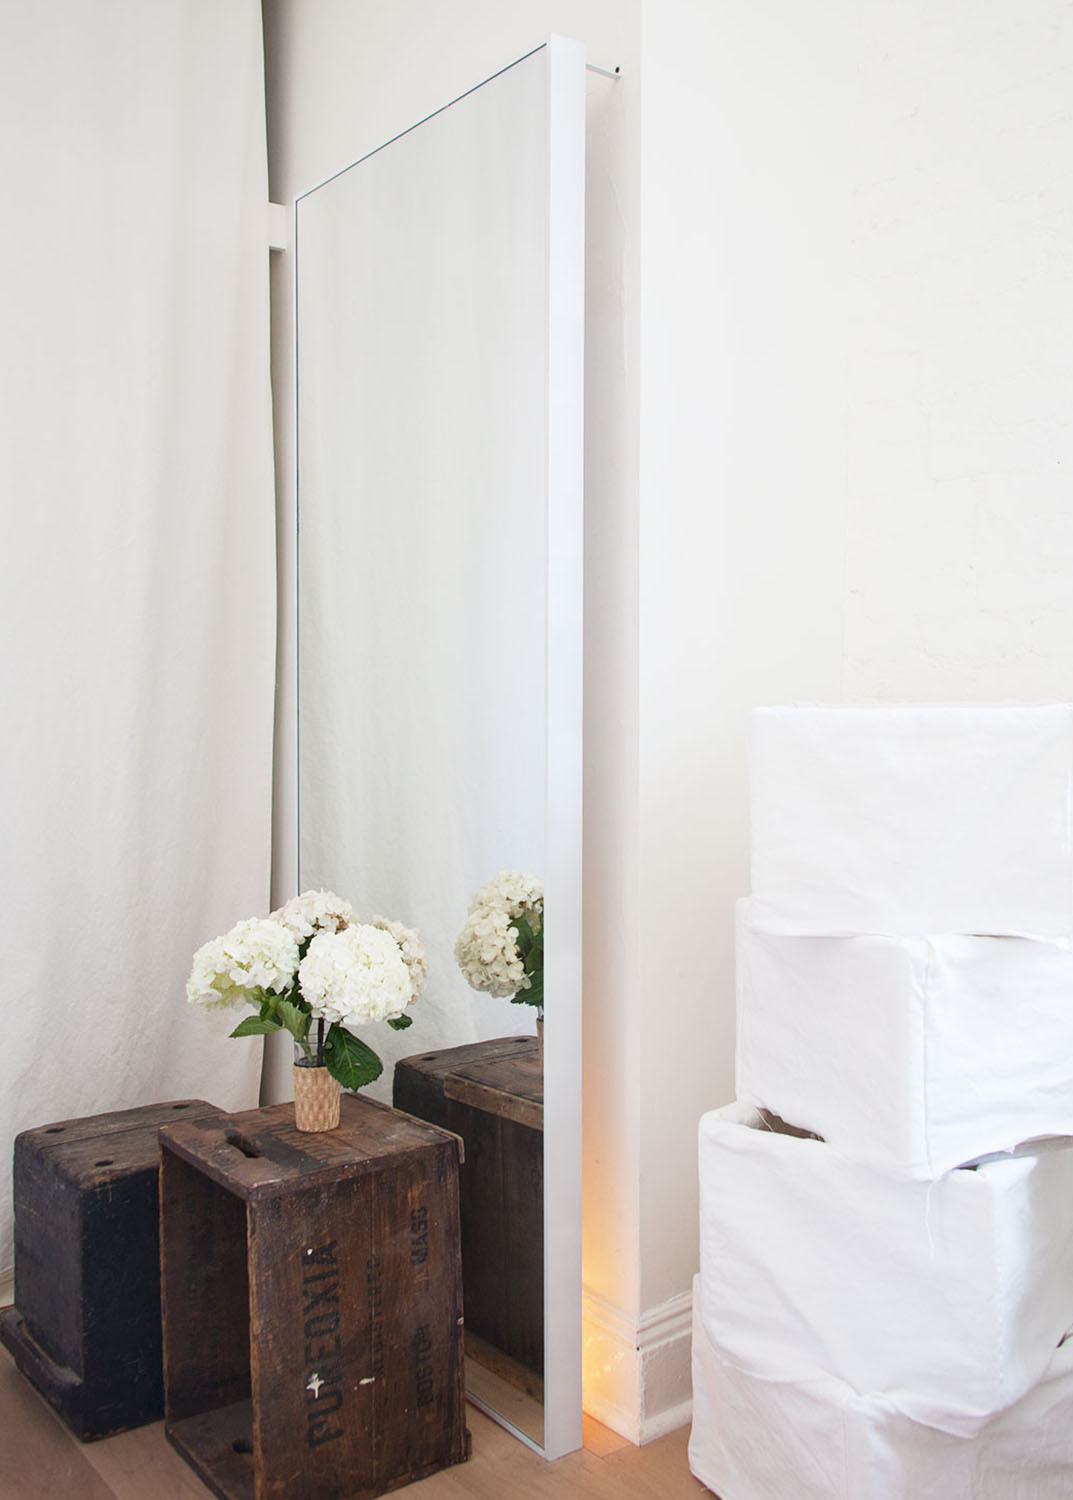 An oversize mirror and fabric-covered storage boxes preserve the spa-like mood.